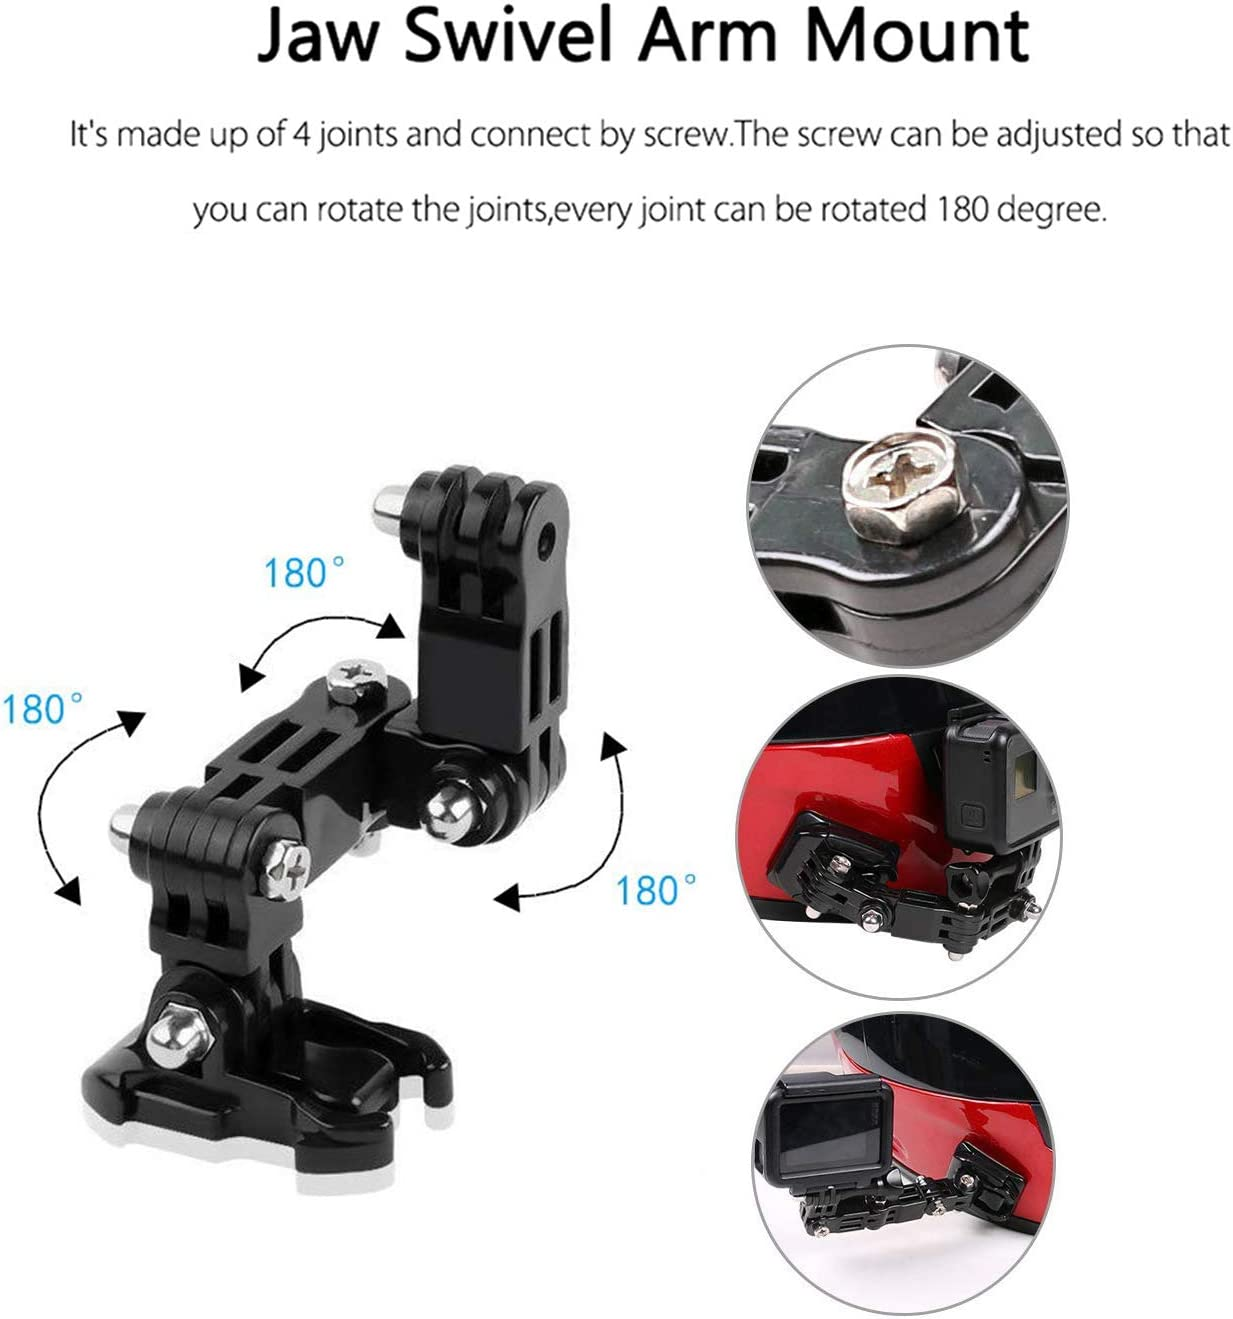 2018 Lowpter Motorcycle Helmet Mount Kits for GoPro Hero 7Black// //6//5,4 Session,3+,DJI Osmo Action//YI Action Camera and More.